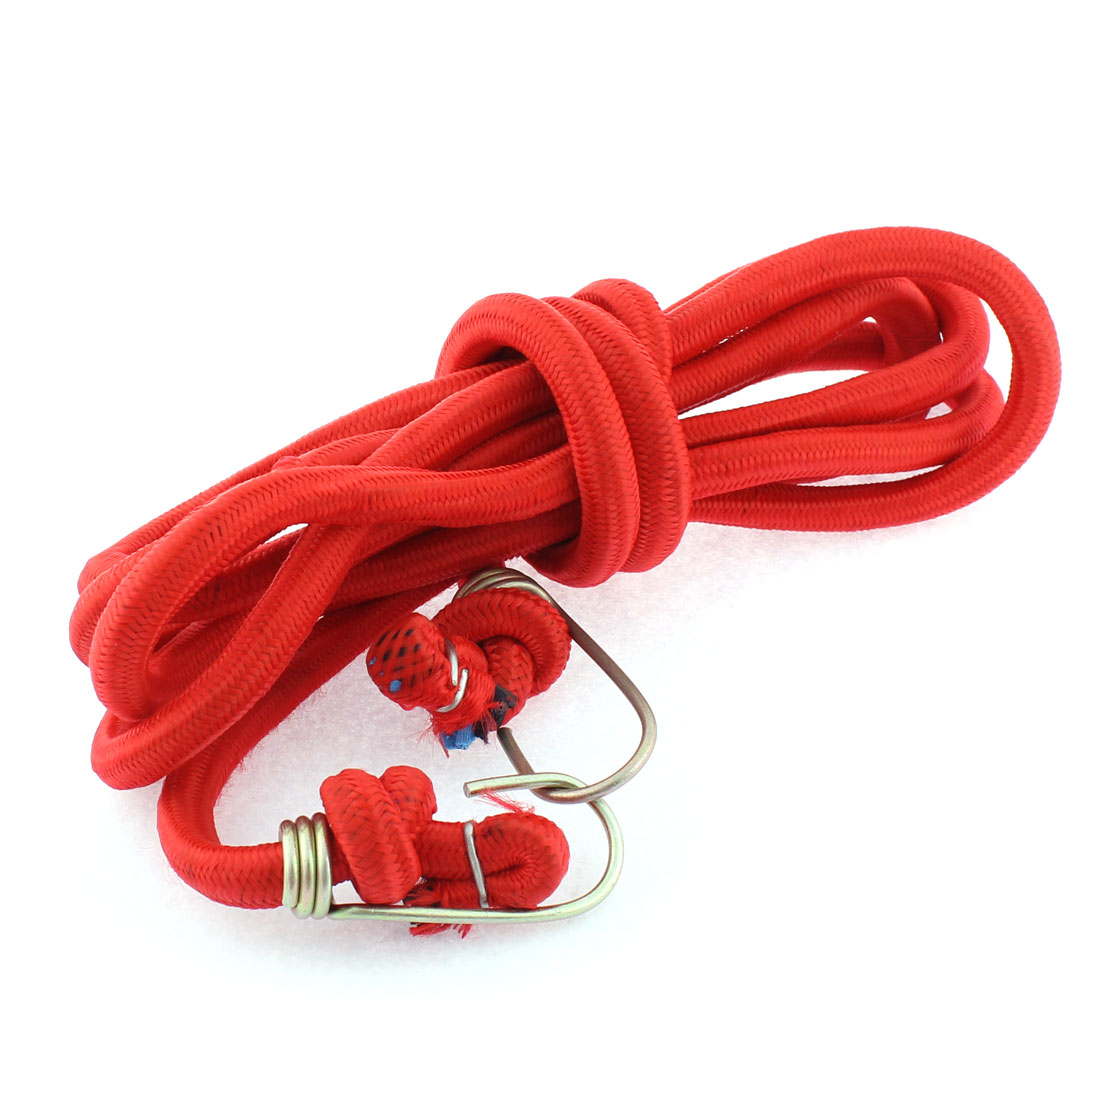 2.54m Long Metal Hook Flat Stretchy Bike Bicycle Luggage Cord Rope Red